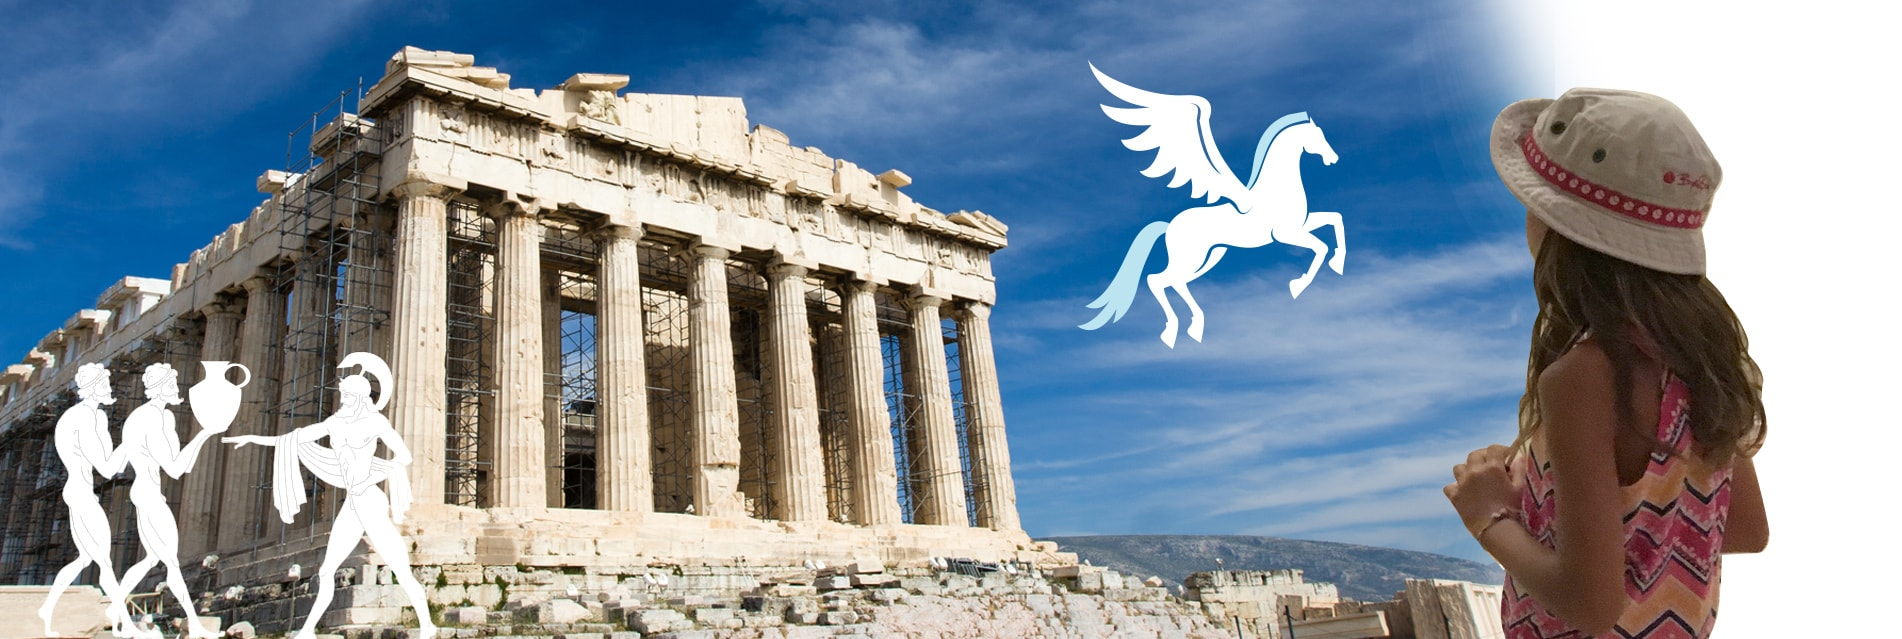 Percy Jackson small group tours mythological Tour of Athens